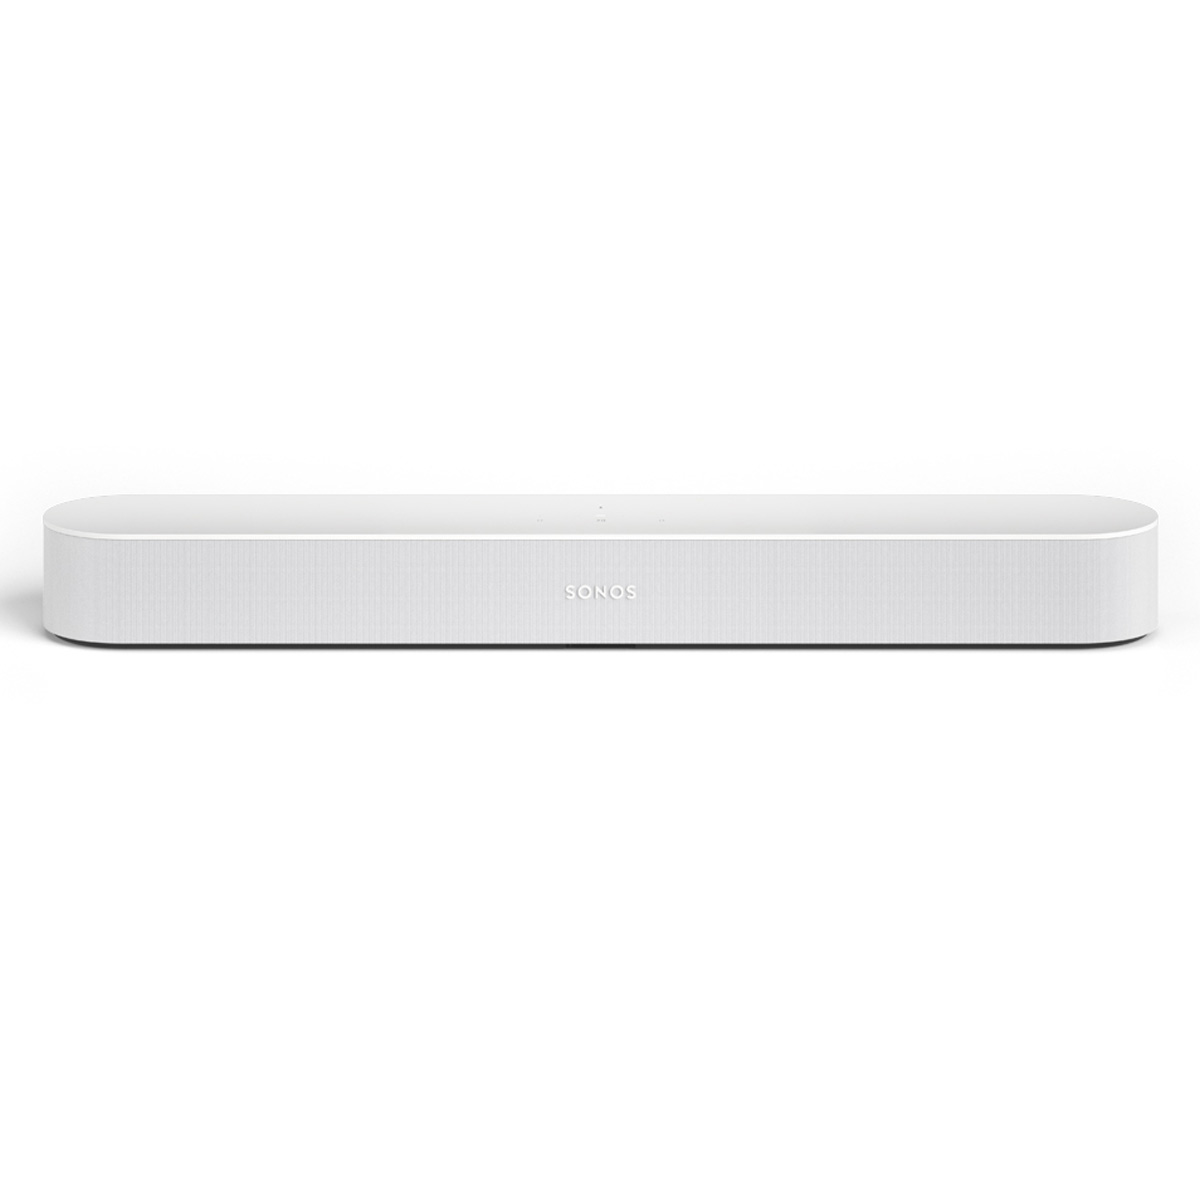 Sonos-Beam-Compact-Smart-Sound-Bar-with-Voice-Control thumbnail 28